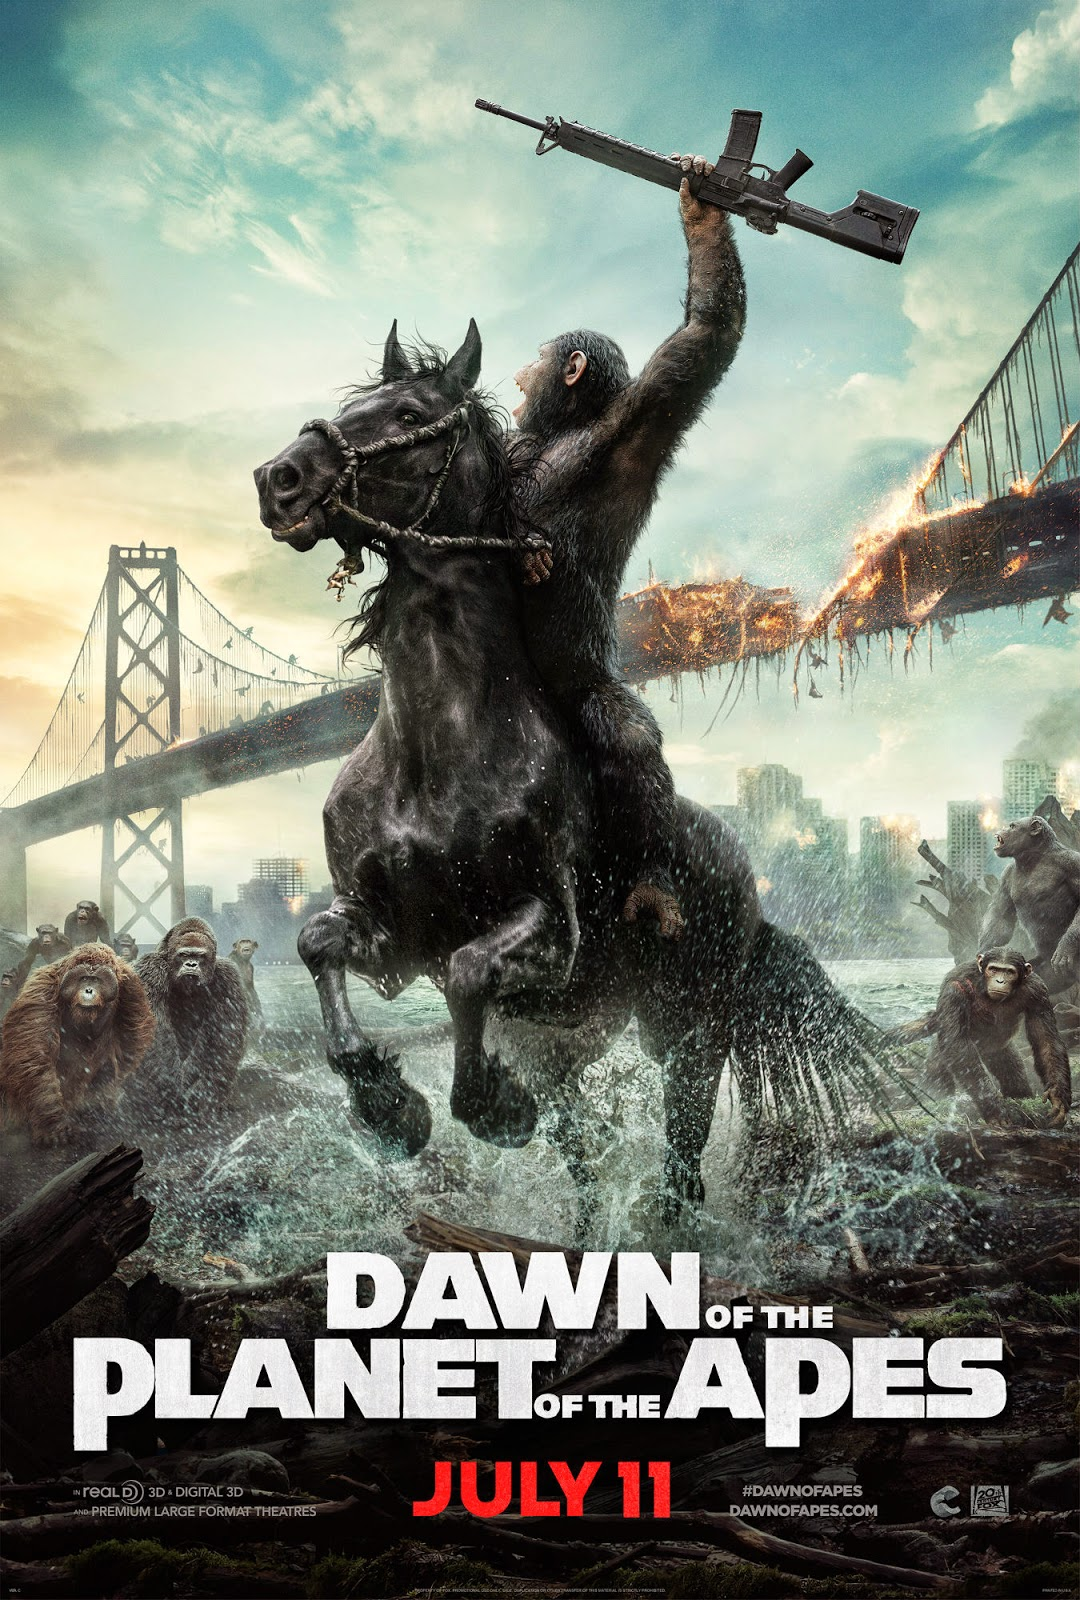 ... FREE HQD: Dawn of the Planet of the Apes (2014) Movie Hd Download Free